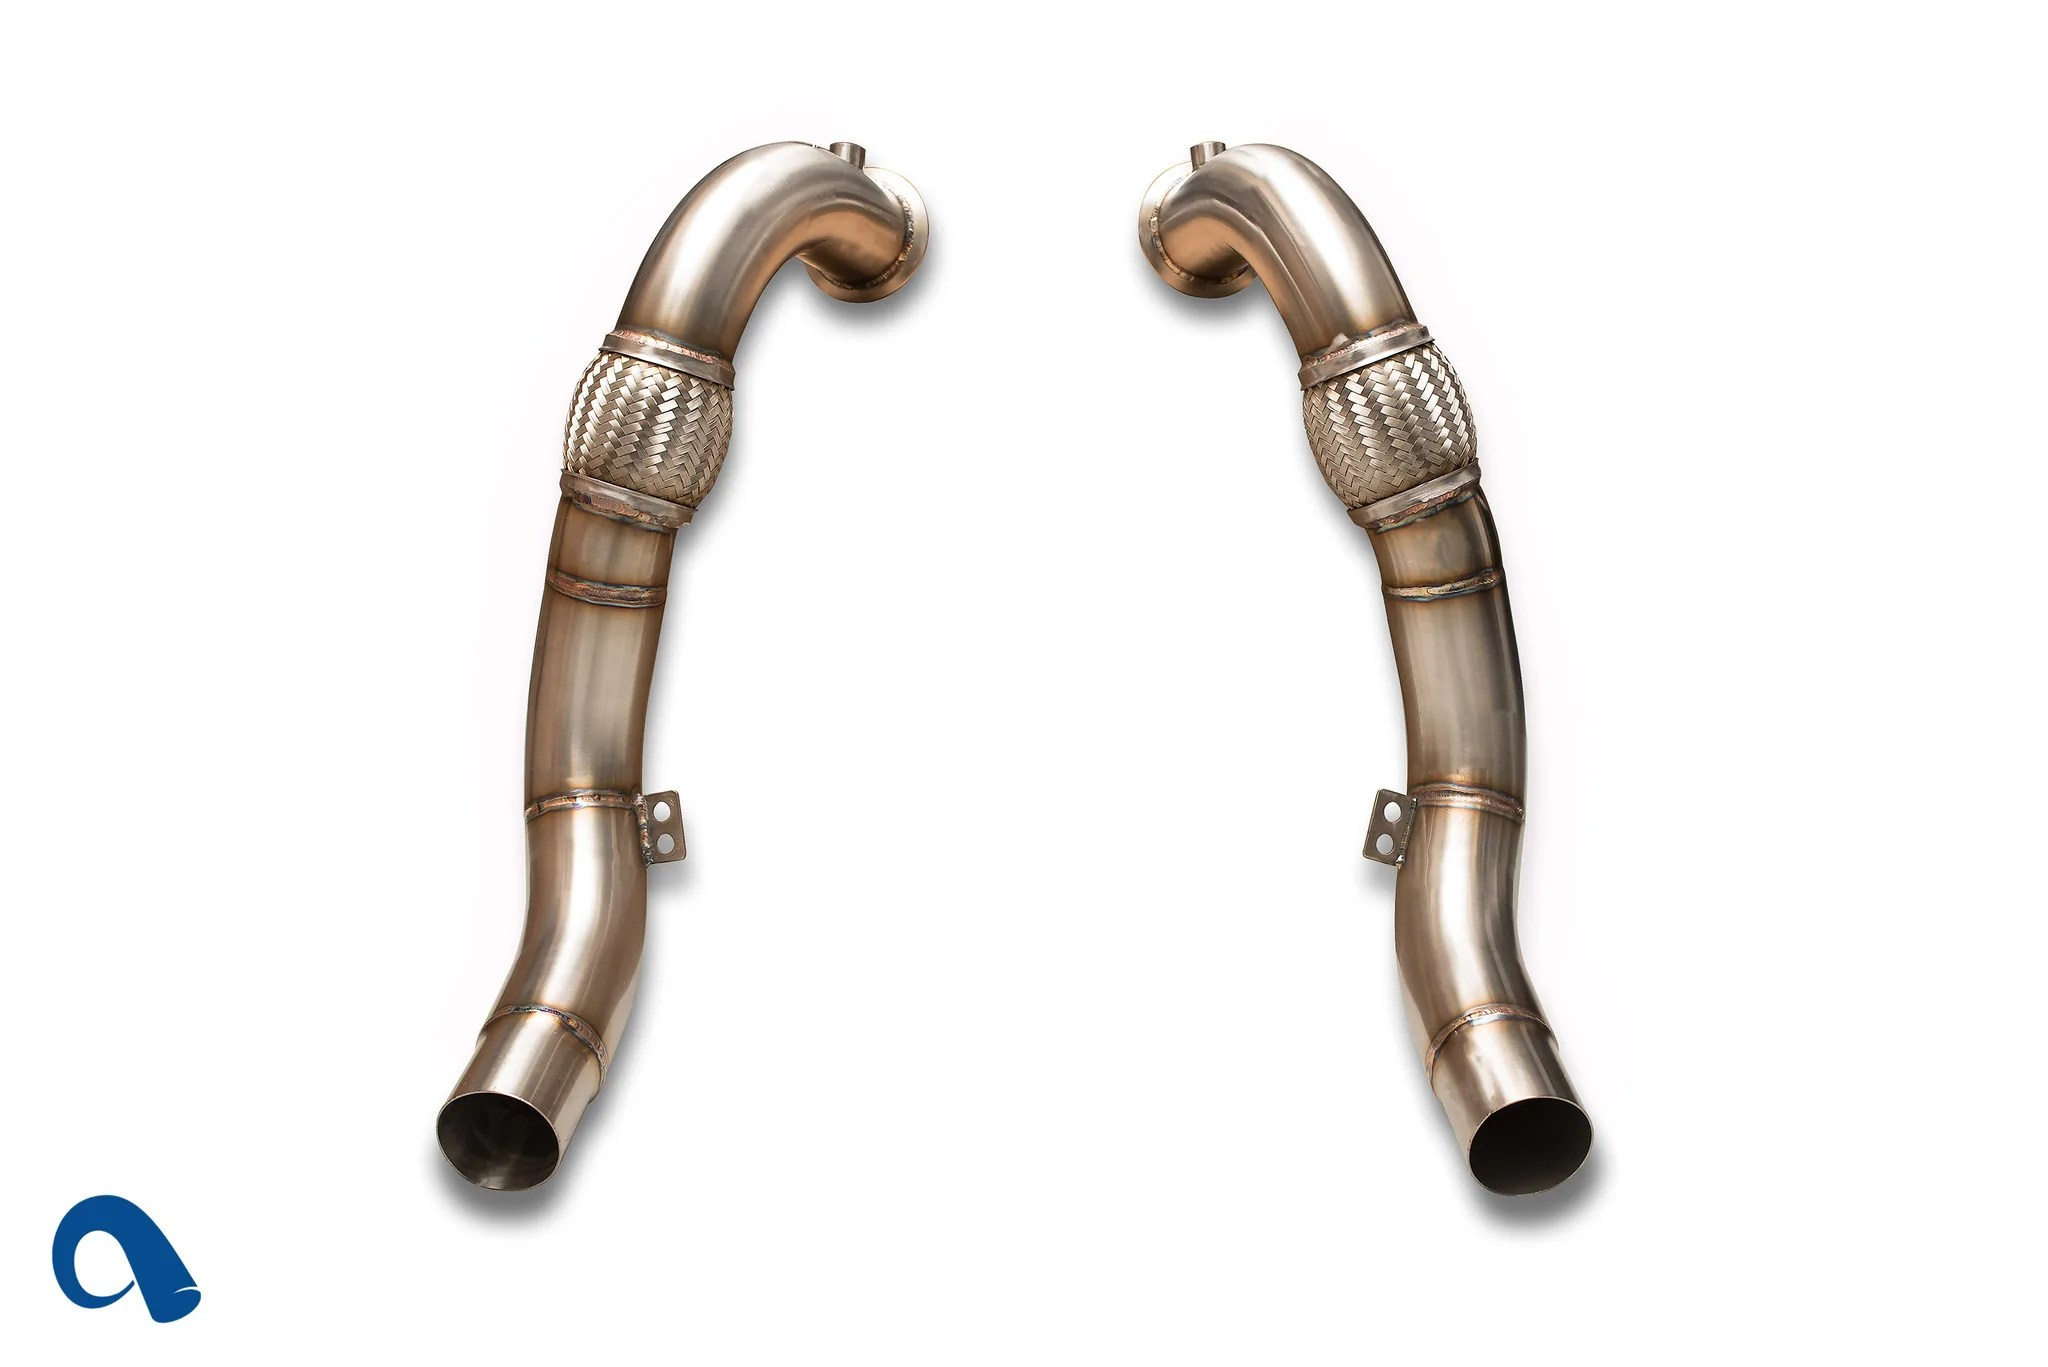 small resolution of bmw n63 downpipes for twin turbo v8 bmw x5 and x6 f10 550i by bmw active autowerke